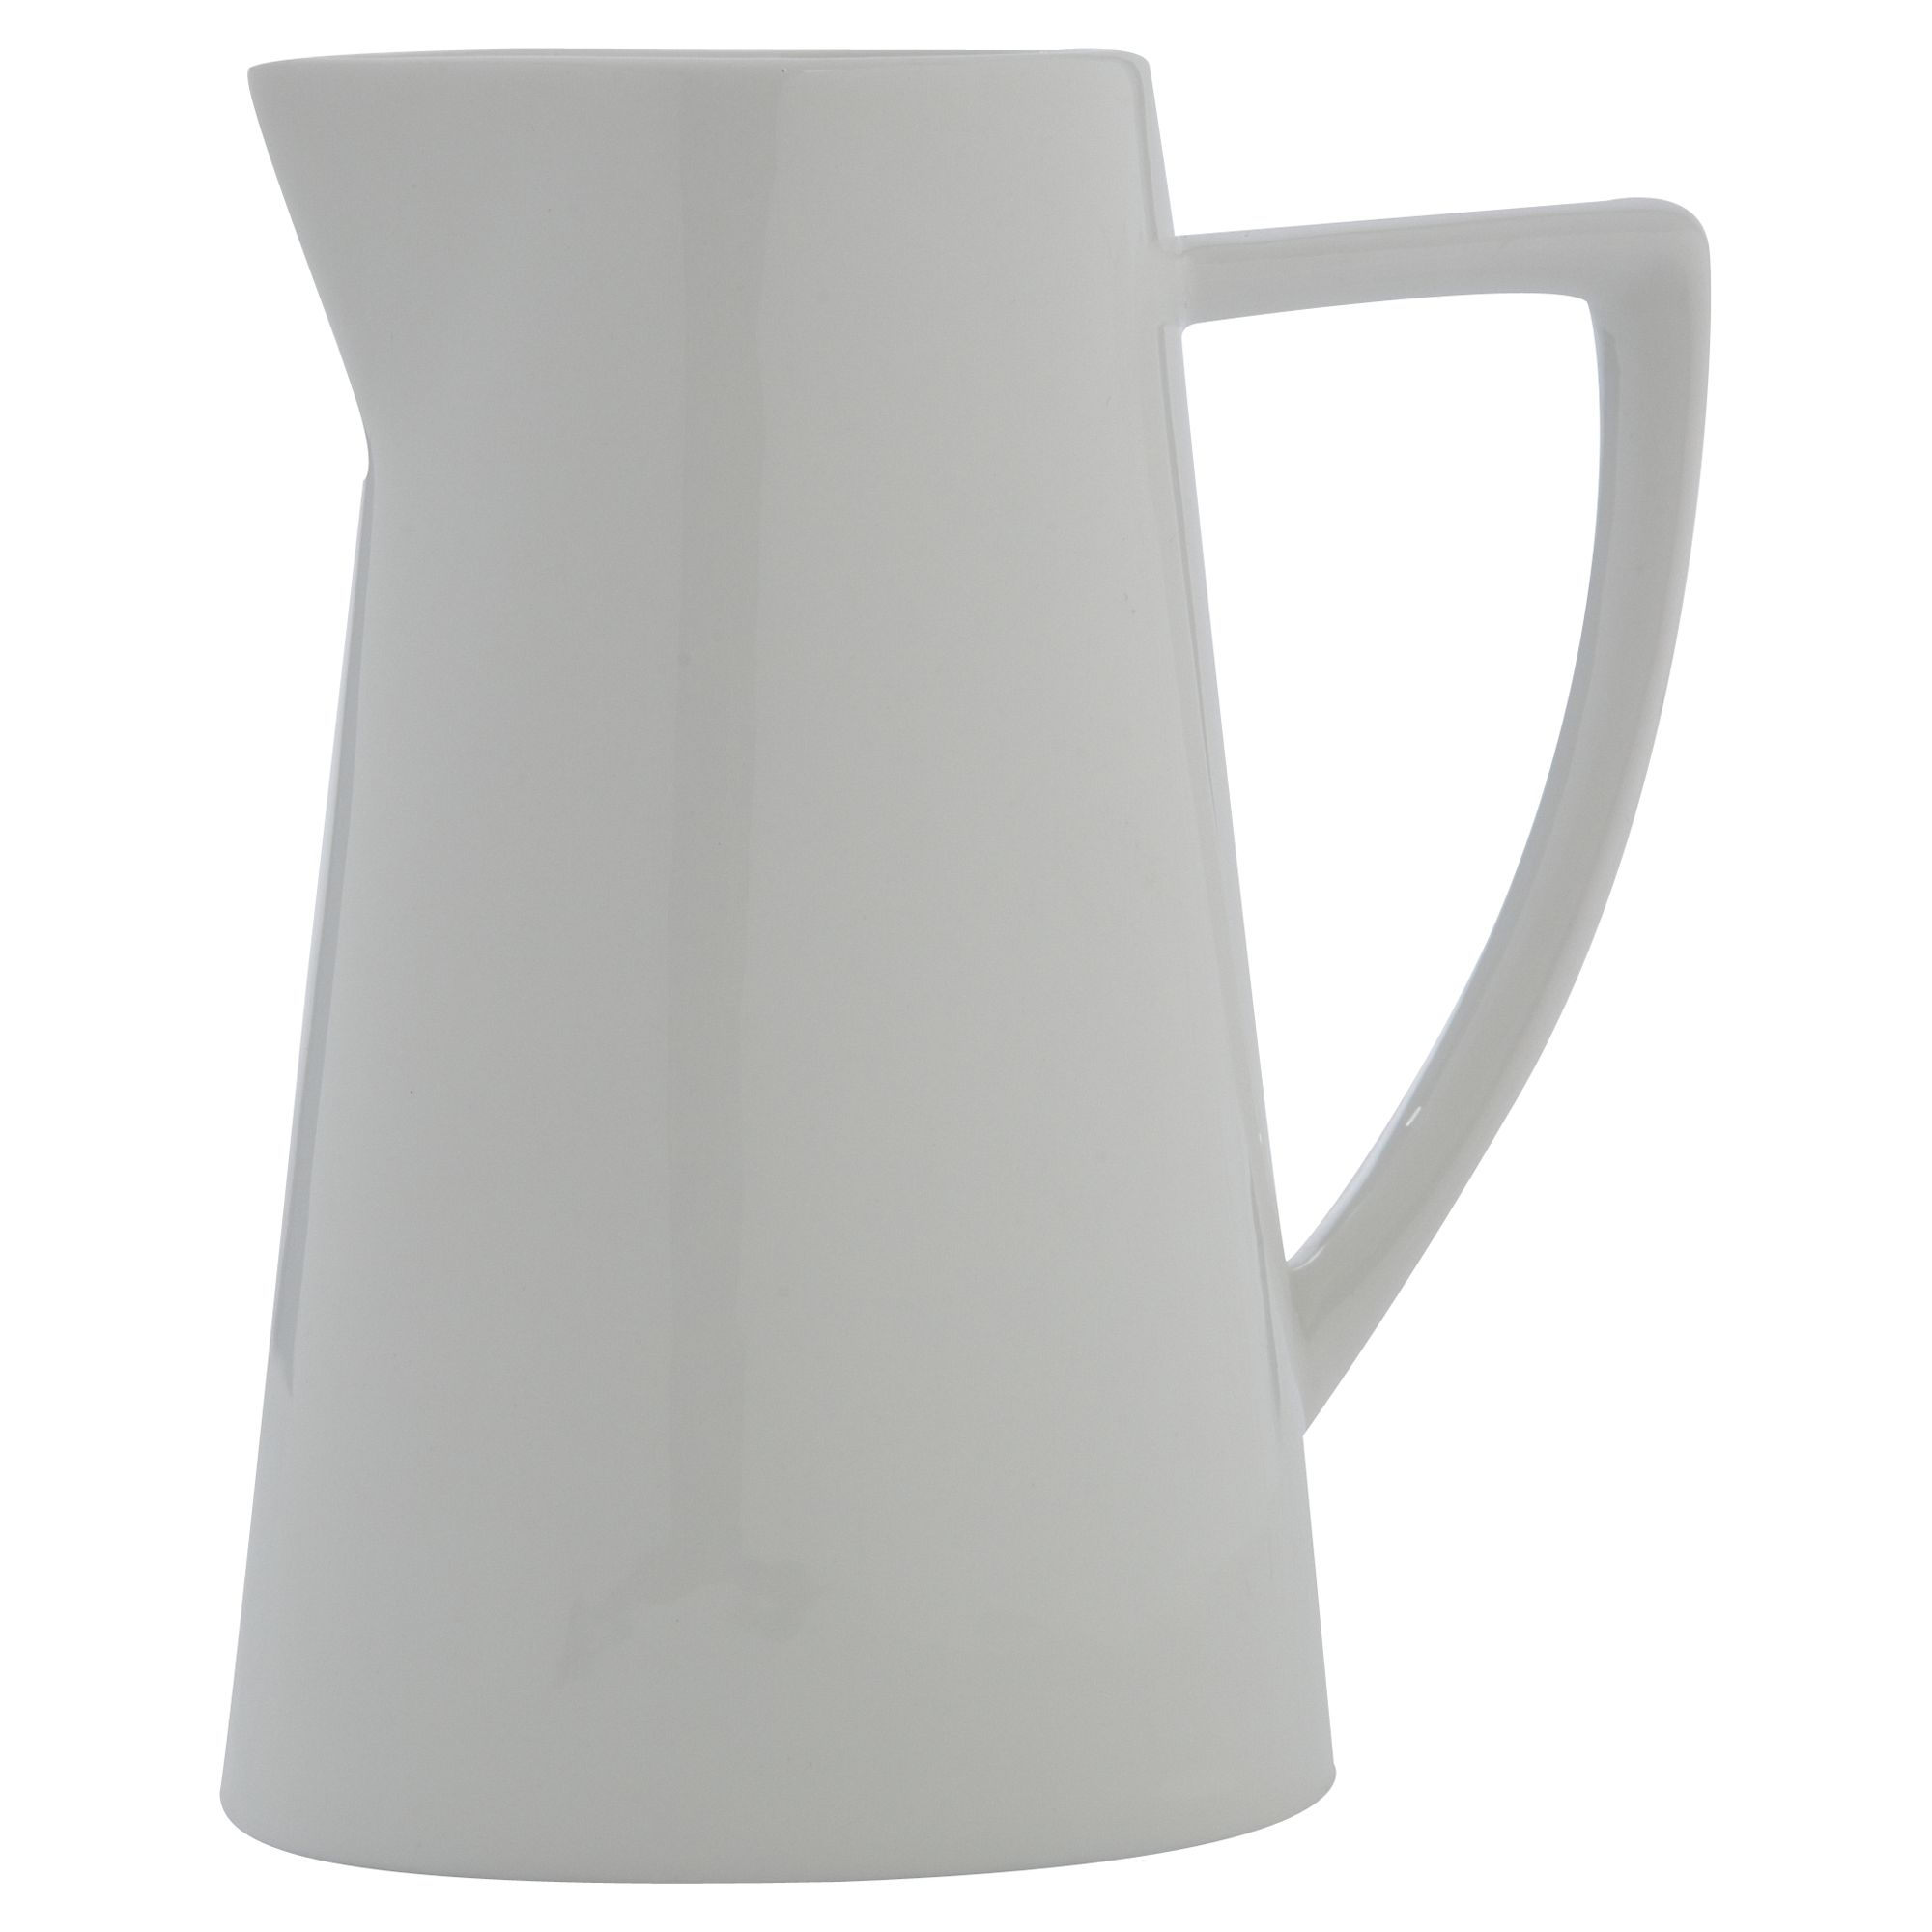 Eternal cream jug